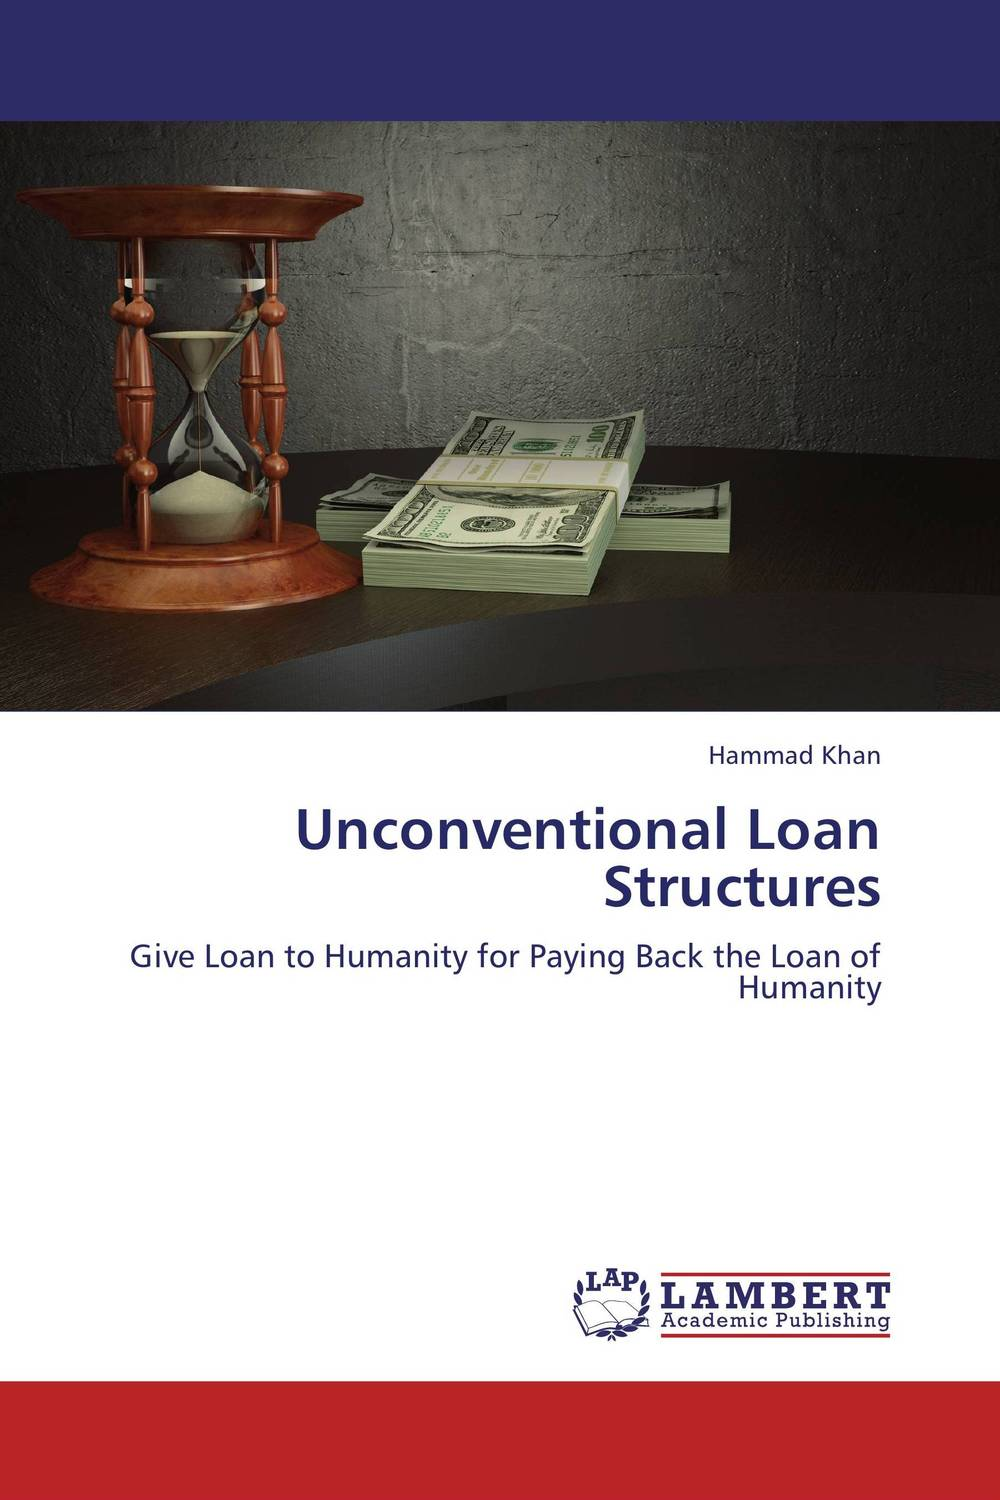 Unconventional Loan Structures